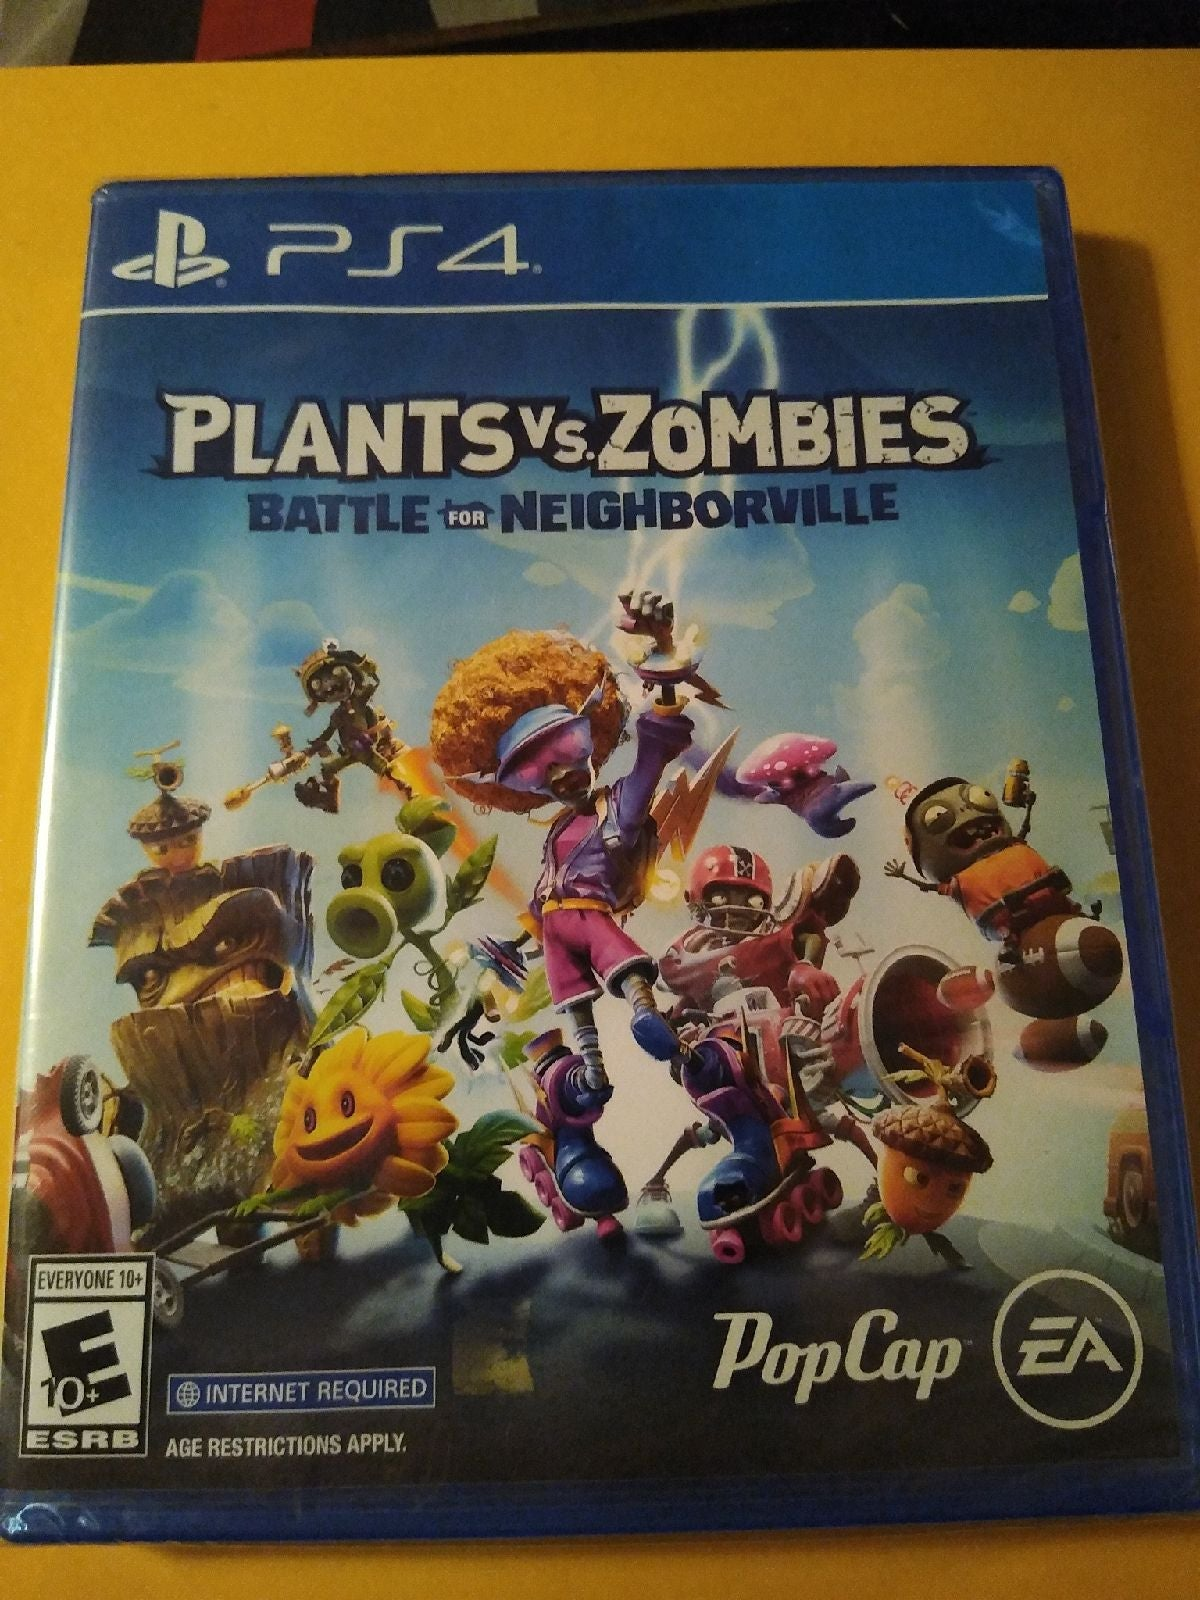 PS4 New Plants vs Zombies Never opened